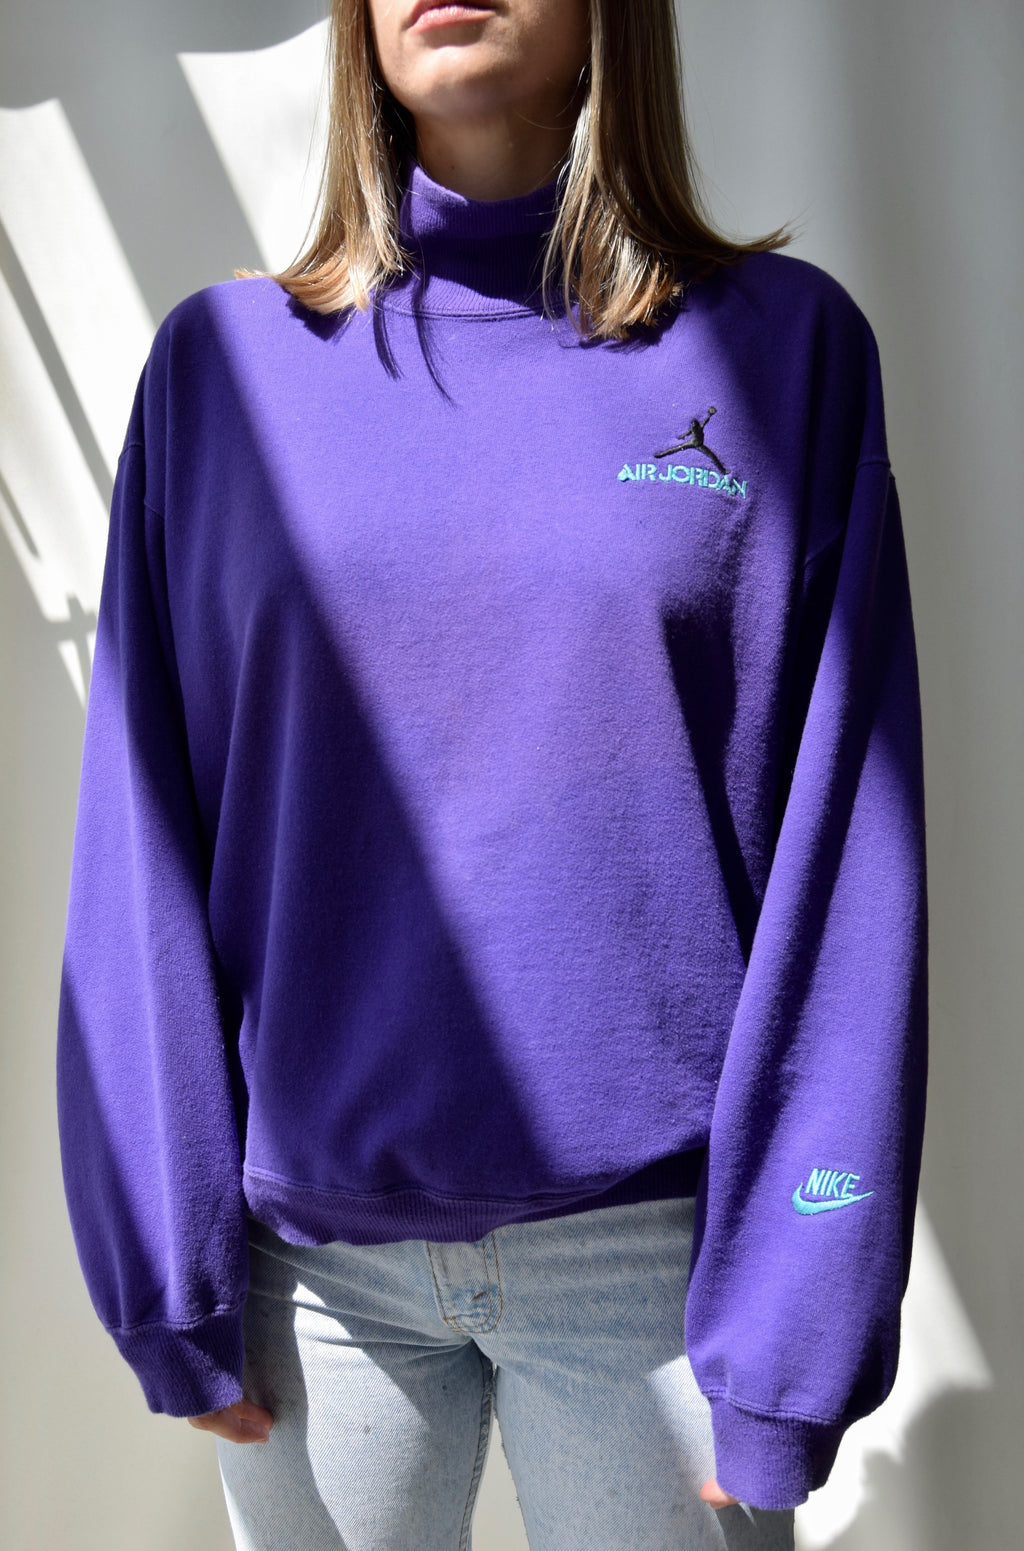 90's Purple Nike Air Jordan Sweatshirt